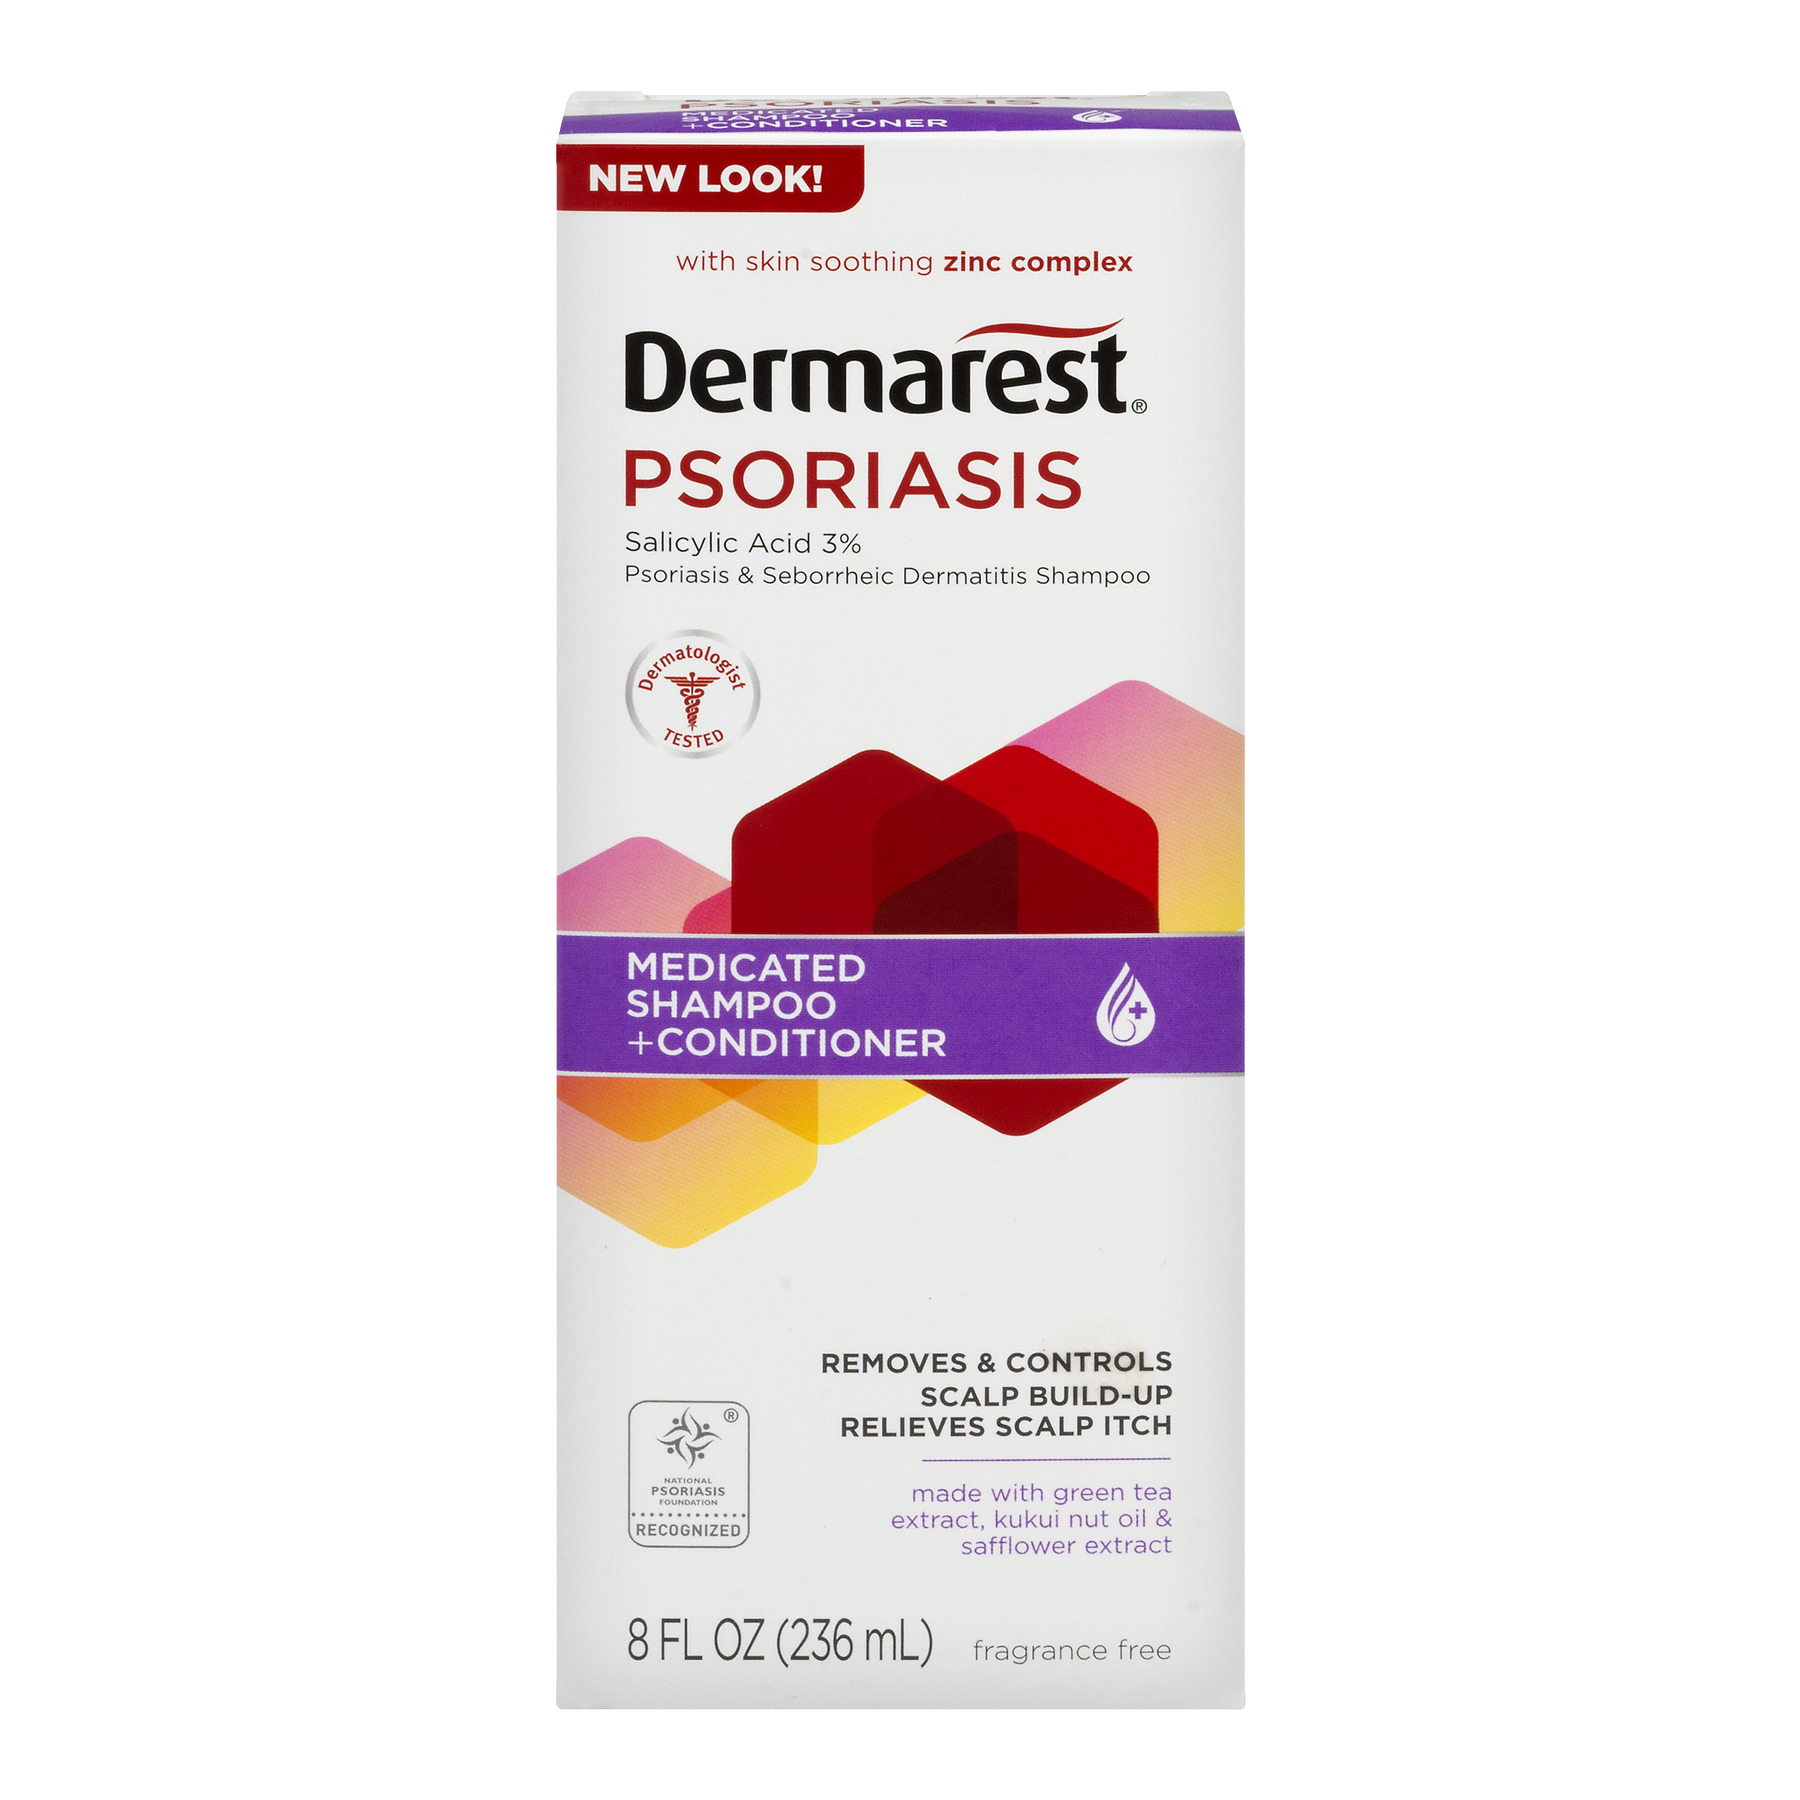 Dermarest Psoriasis Medicated Shampoo Plus Conditioner, 8.0 FL OZ